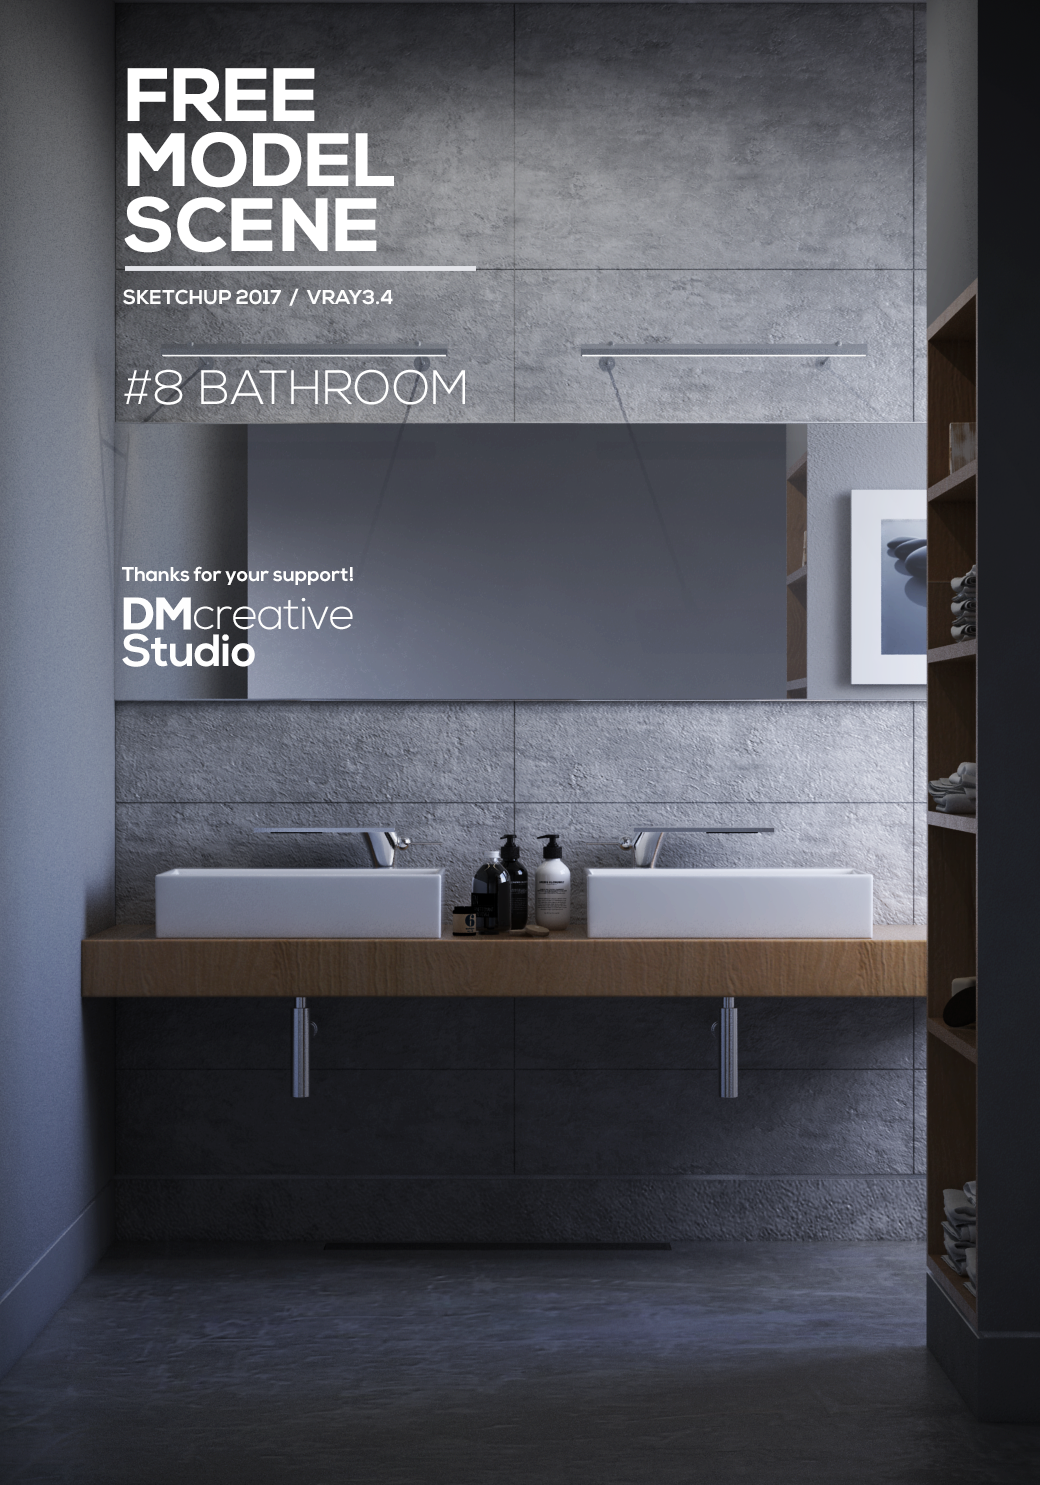 8 FREE MODEL SCENE BATHROOM on Behance